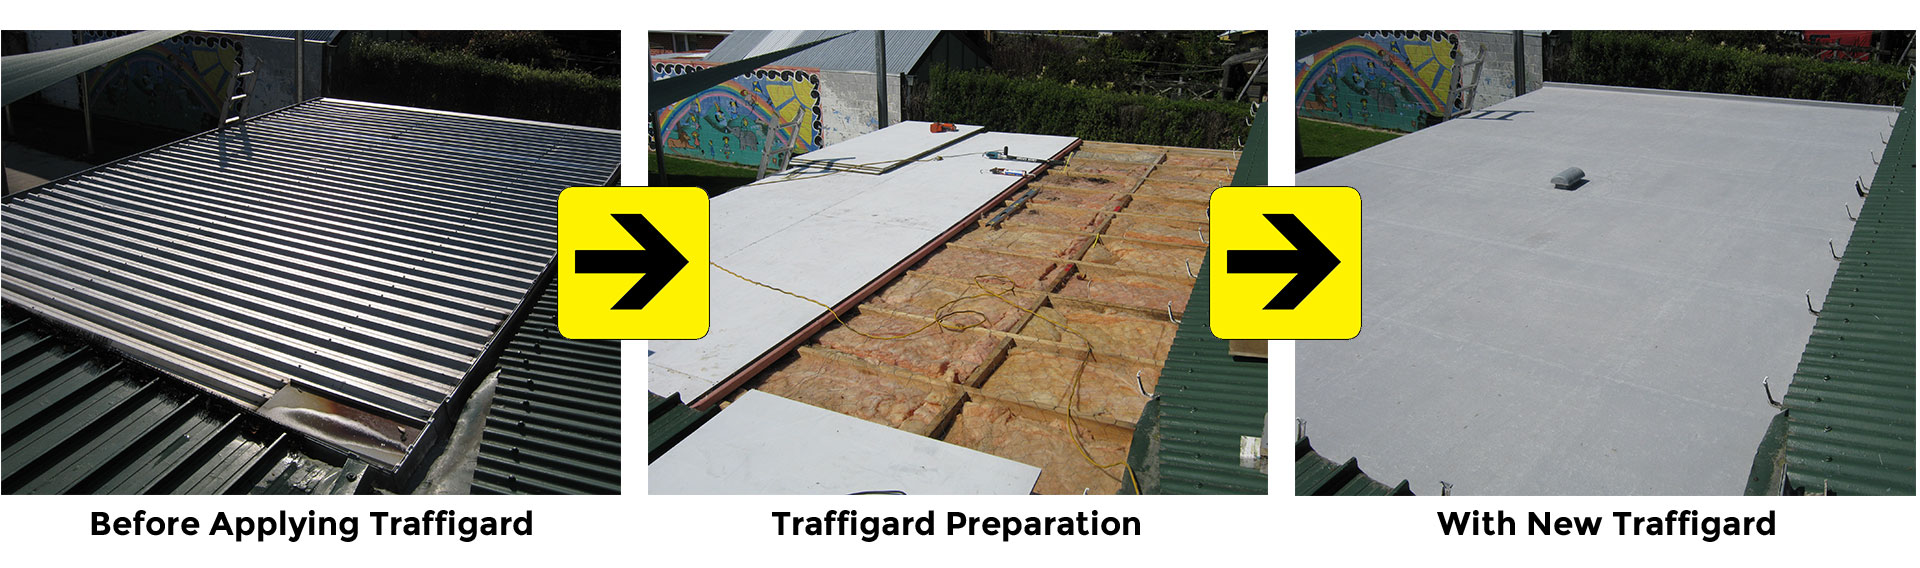 Traffigard Roofing - Traffigard Application